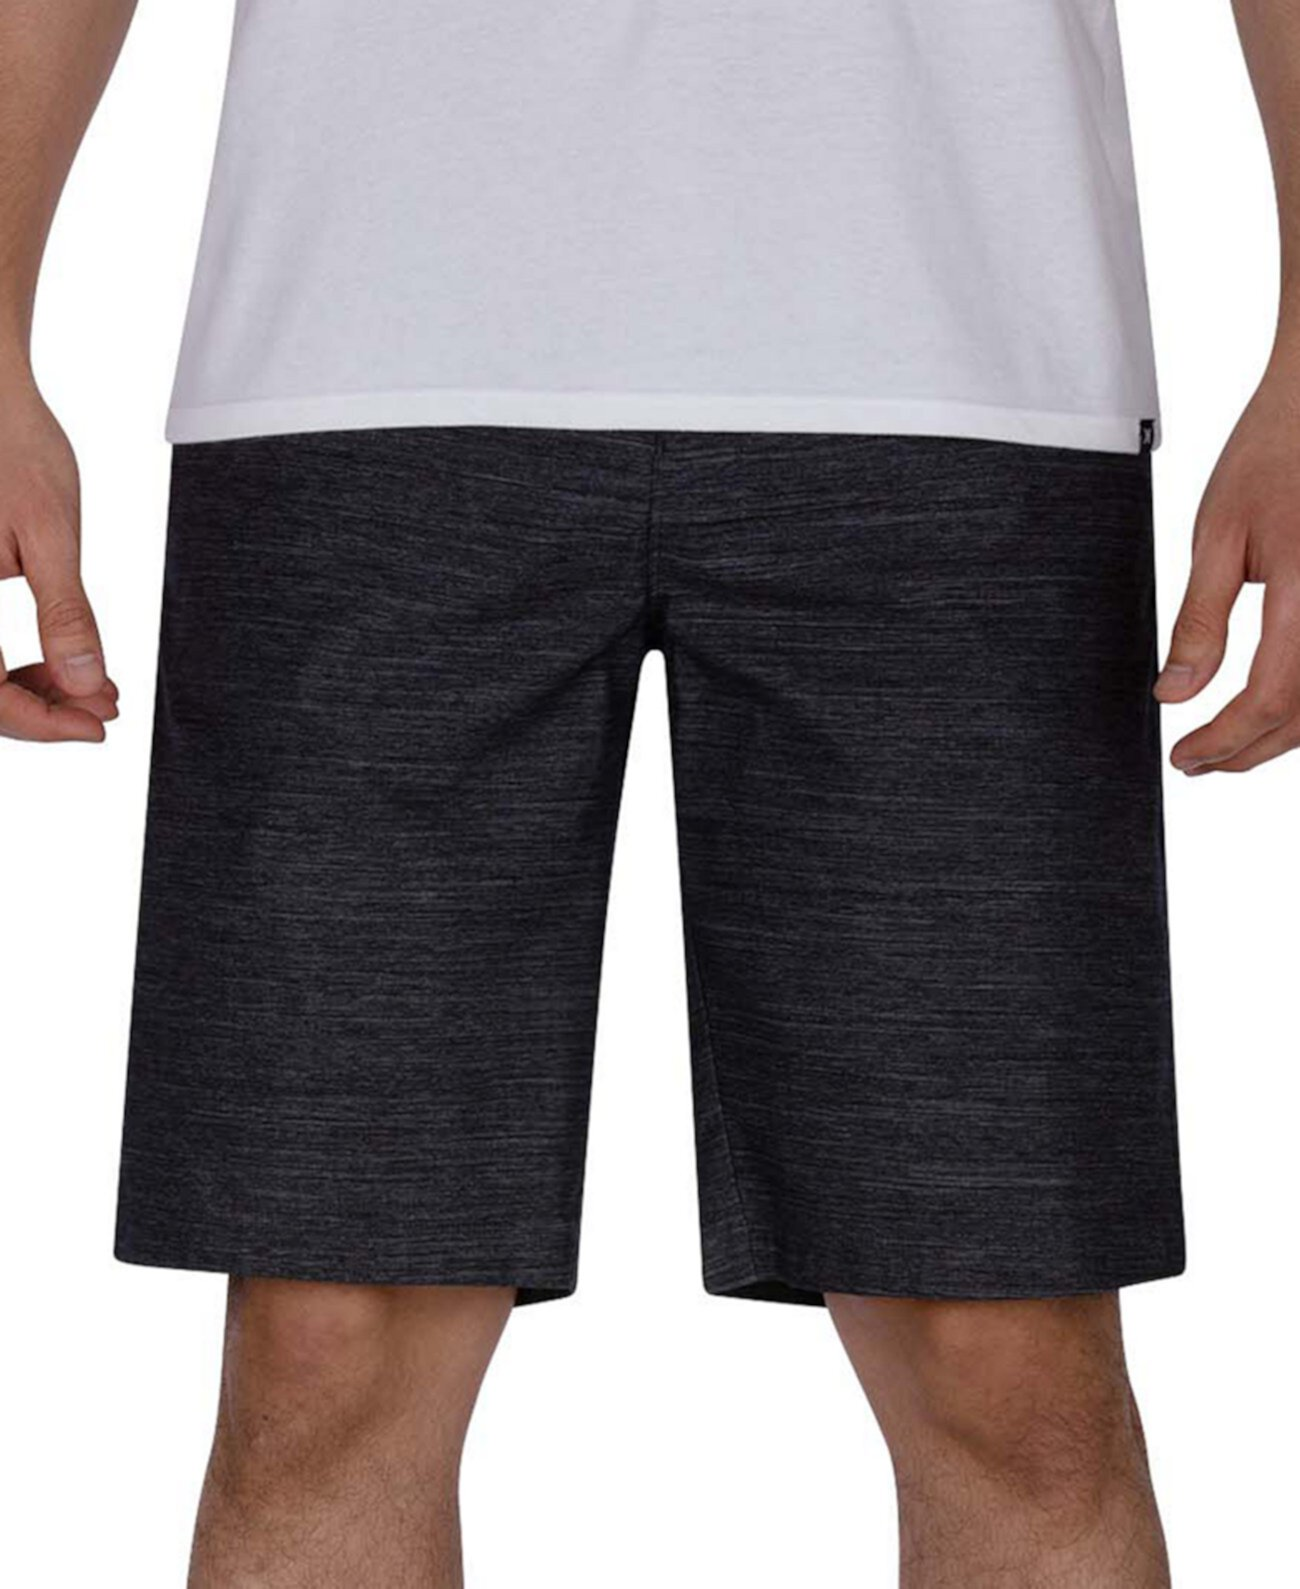 "Мужские шорты Breathe Heried Dri-FIT 9,5 "" Hurley"